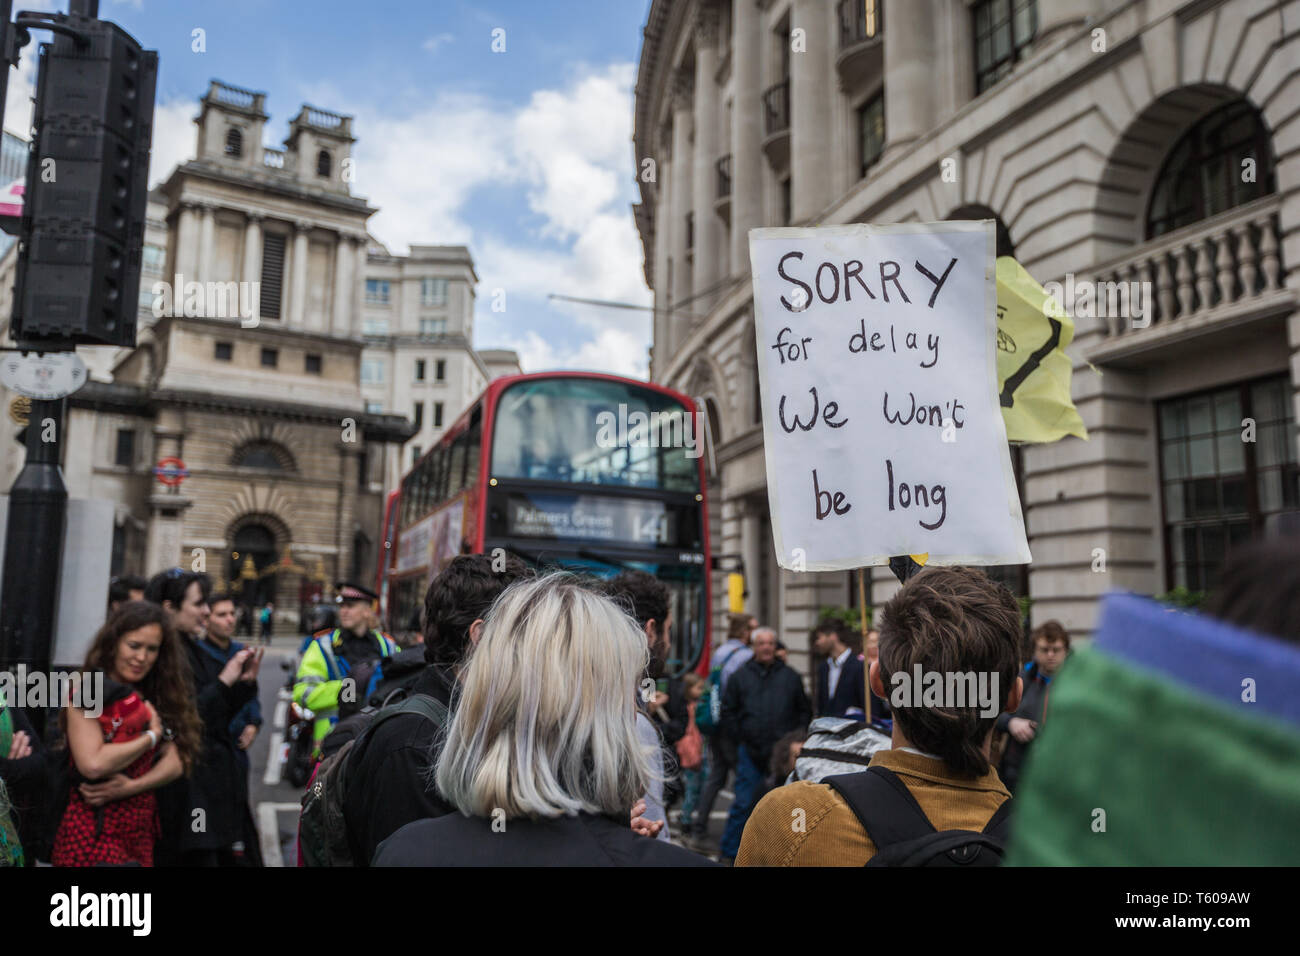 On the final day of the 12-day Extinction Rebellion protest, activists hit different parts of London causing peaceful disruption, and blockades. - Stock Image